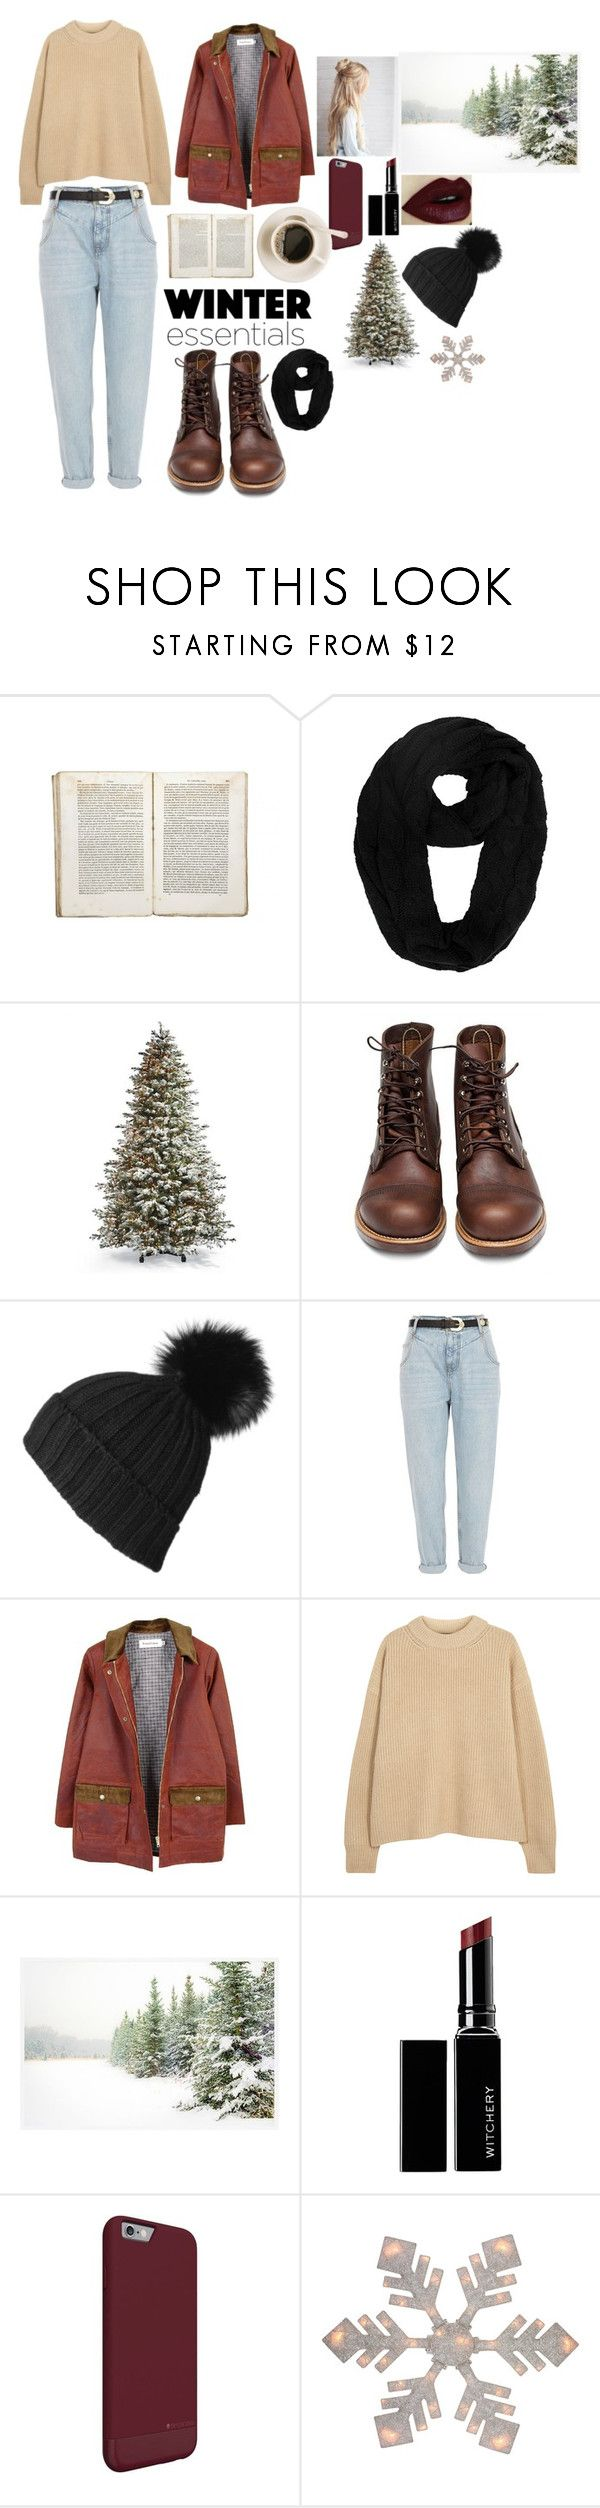 """""""Sin título #167"""" by valusa ❤ liked on Polyvore featuring Jayson Home, Frontgate, Red Wing, Black, River Island, FrenchTrotters, The Row, Pottery Barn and Witchery"""